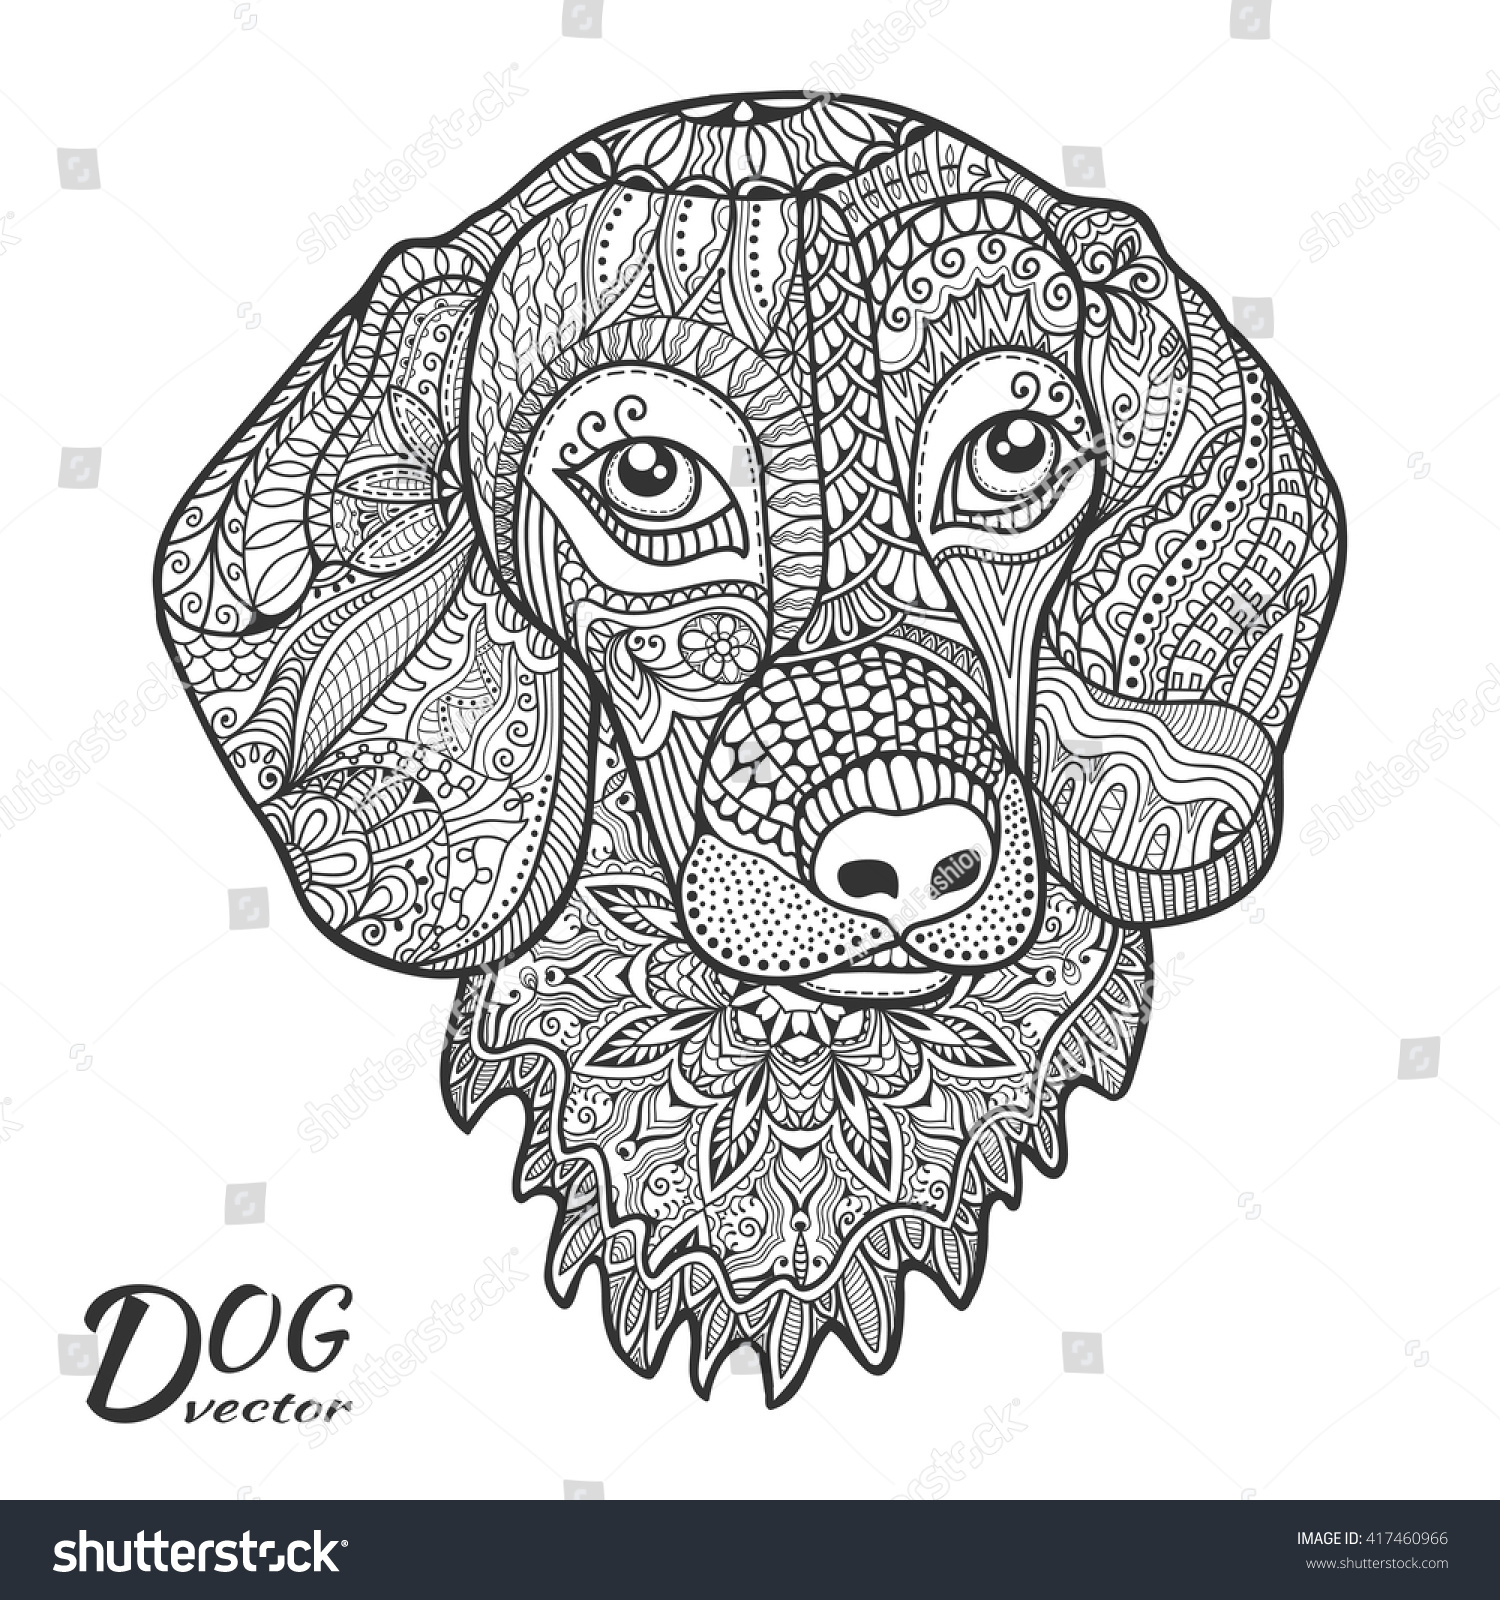 Dog Hand drawn stylized animal head with ethnic floral pattern zen-doodle style art Sketch animal collection for coloring book page fabric print tattoo design Isolated black on white background